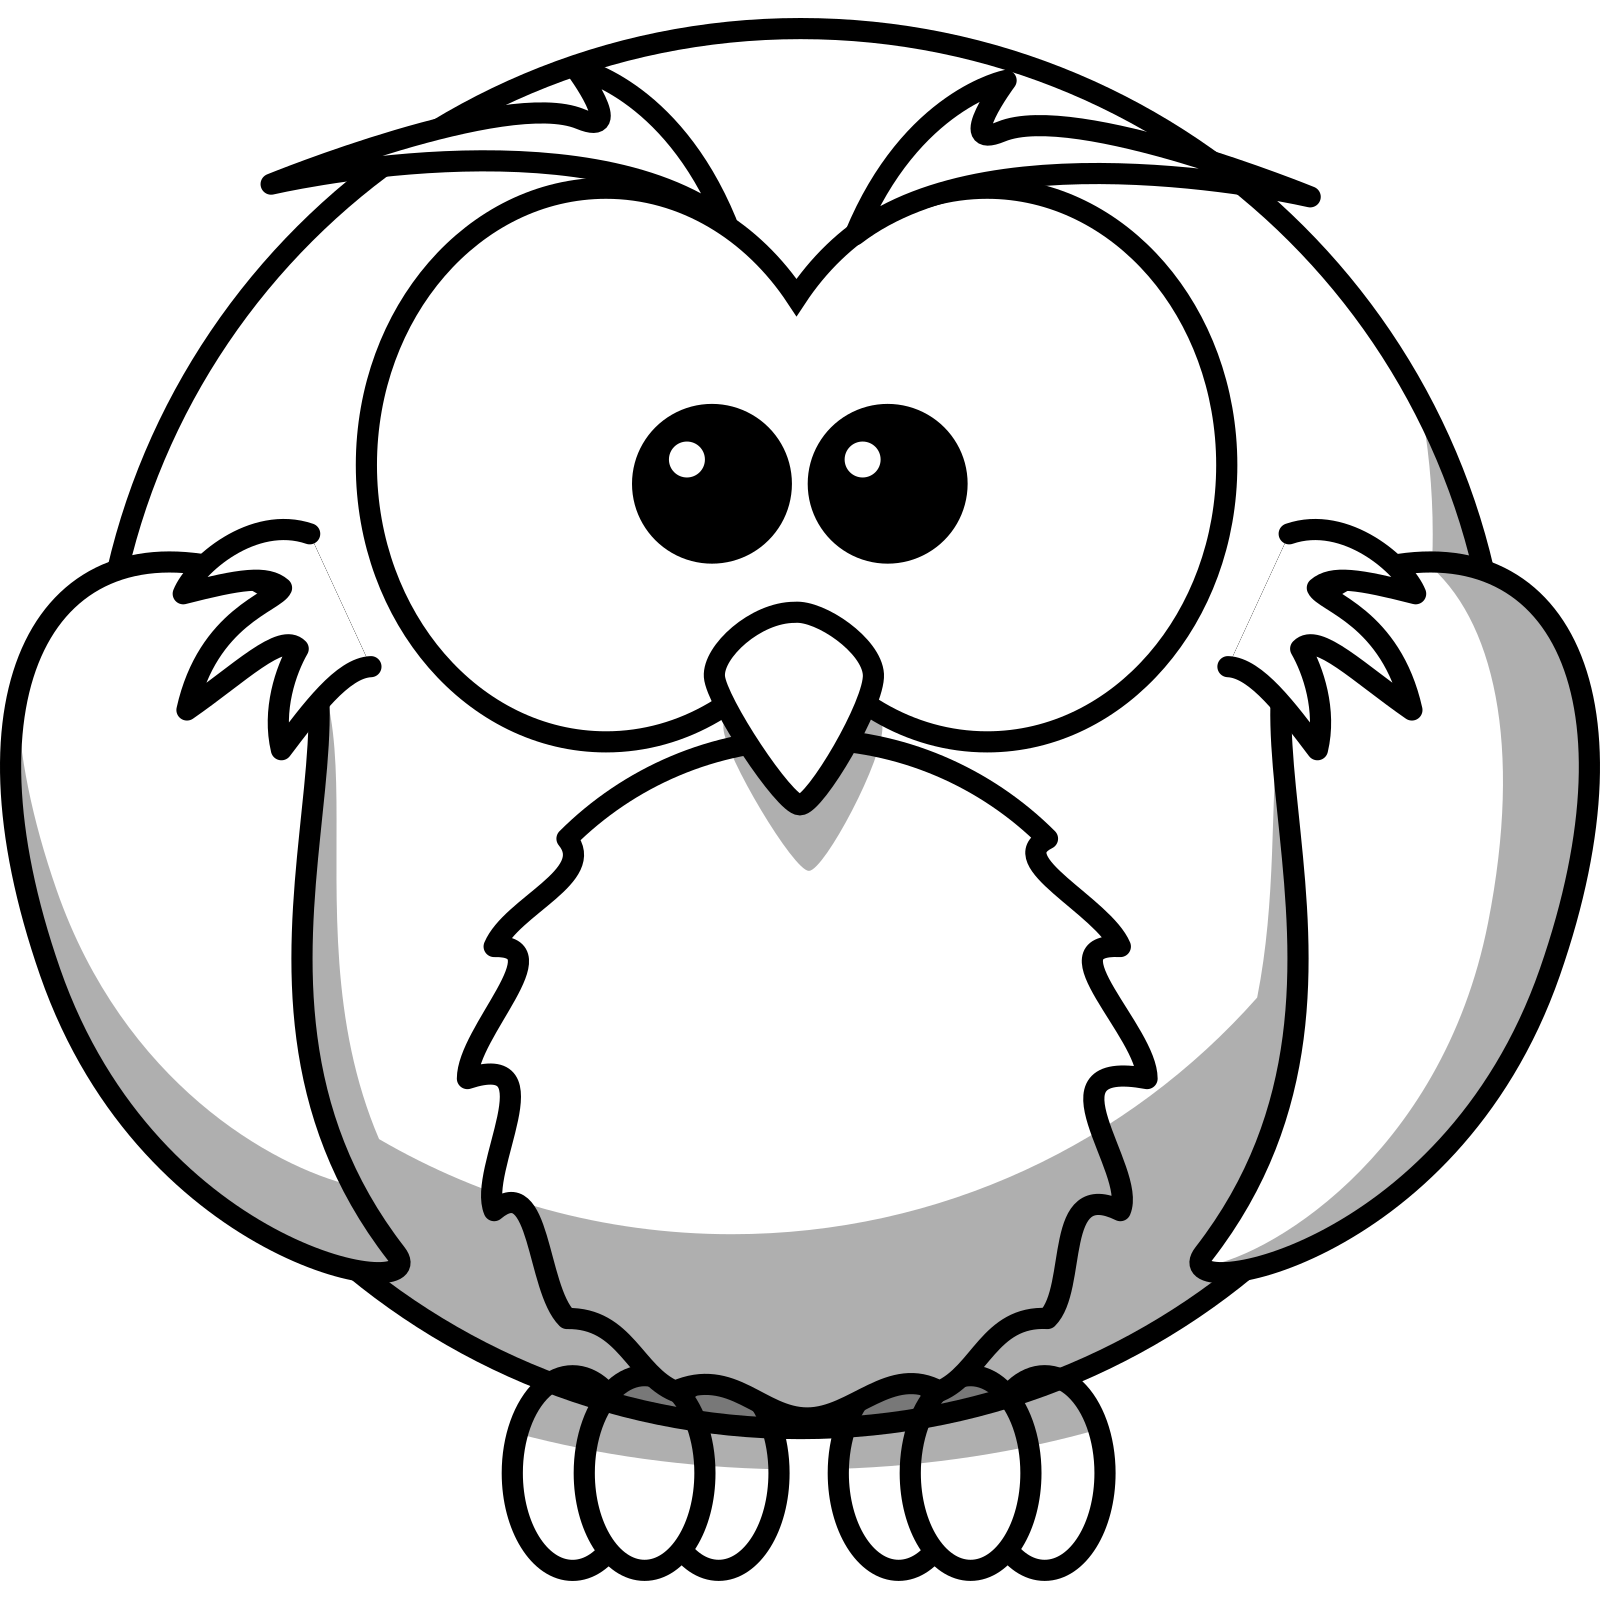 Coloring page outline of owl Clipart Image